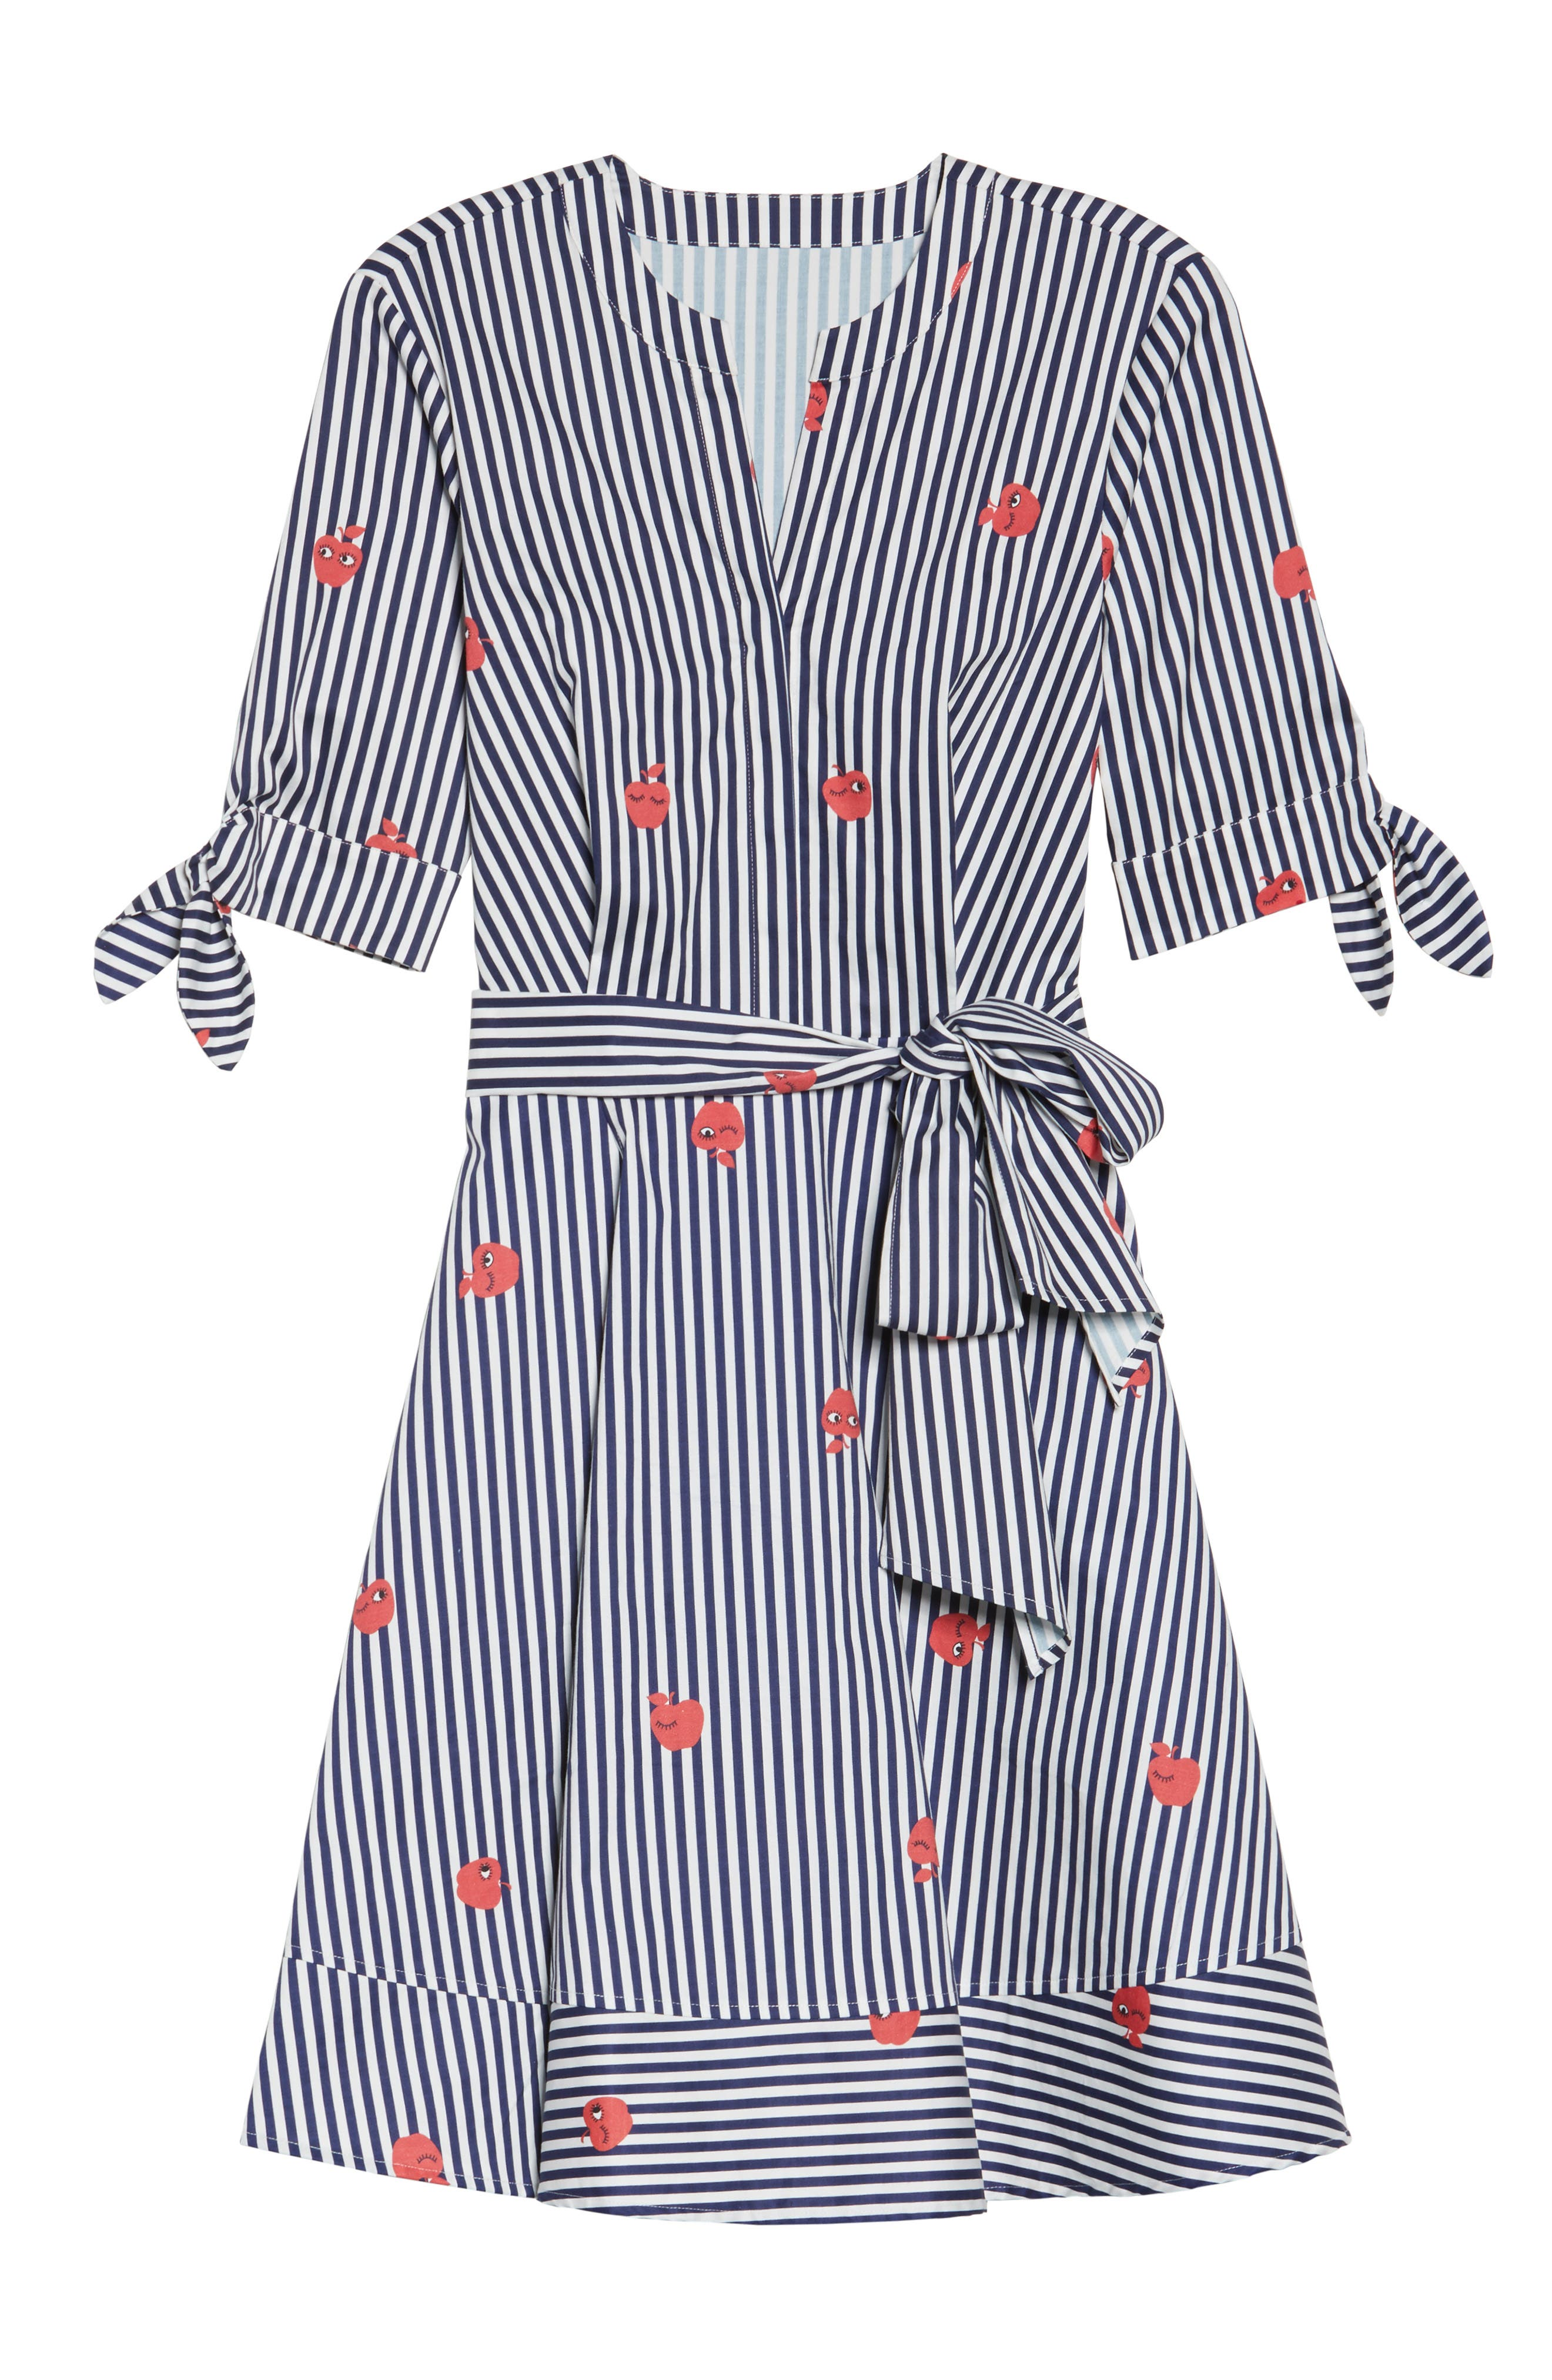 Bella Tie Front Fit & Flare Shirtdress,                             Alternate thumbnail 6, color,                             Navy/ White Stripe